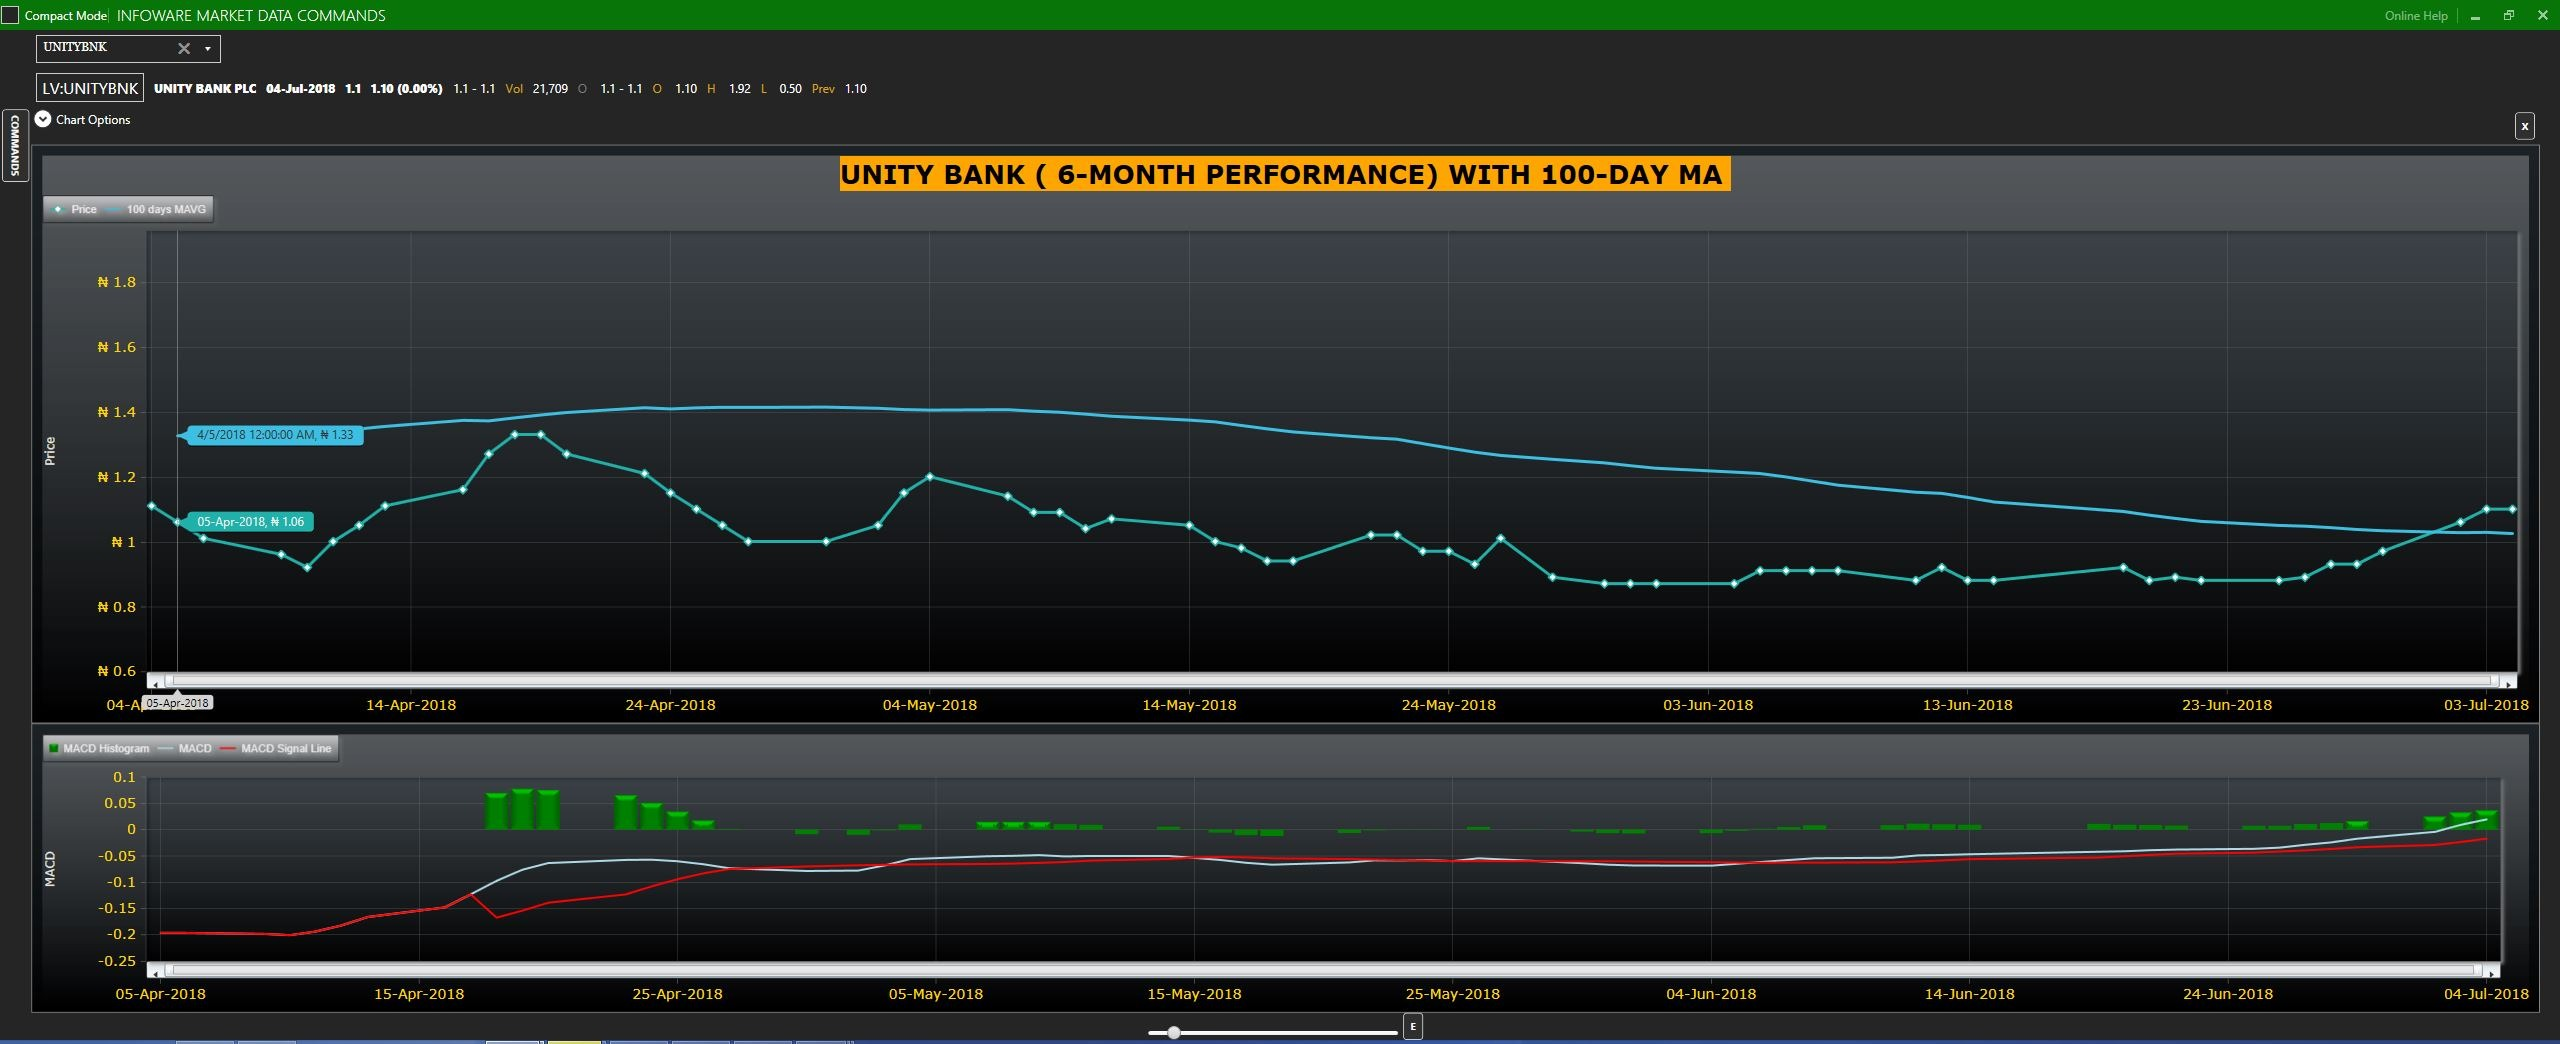 Unity bank stock graph